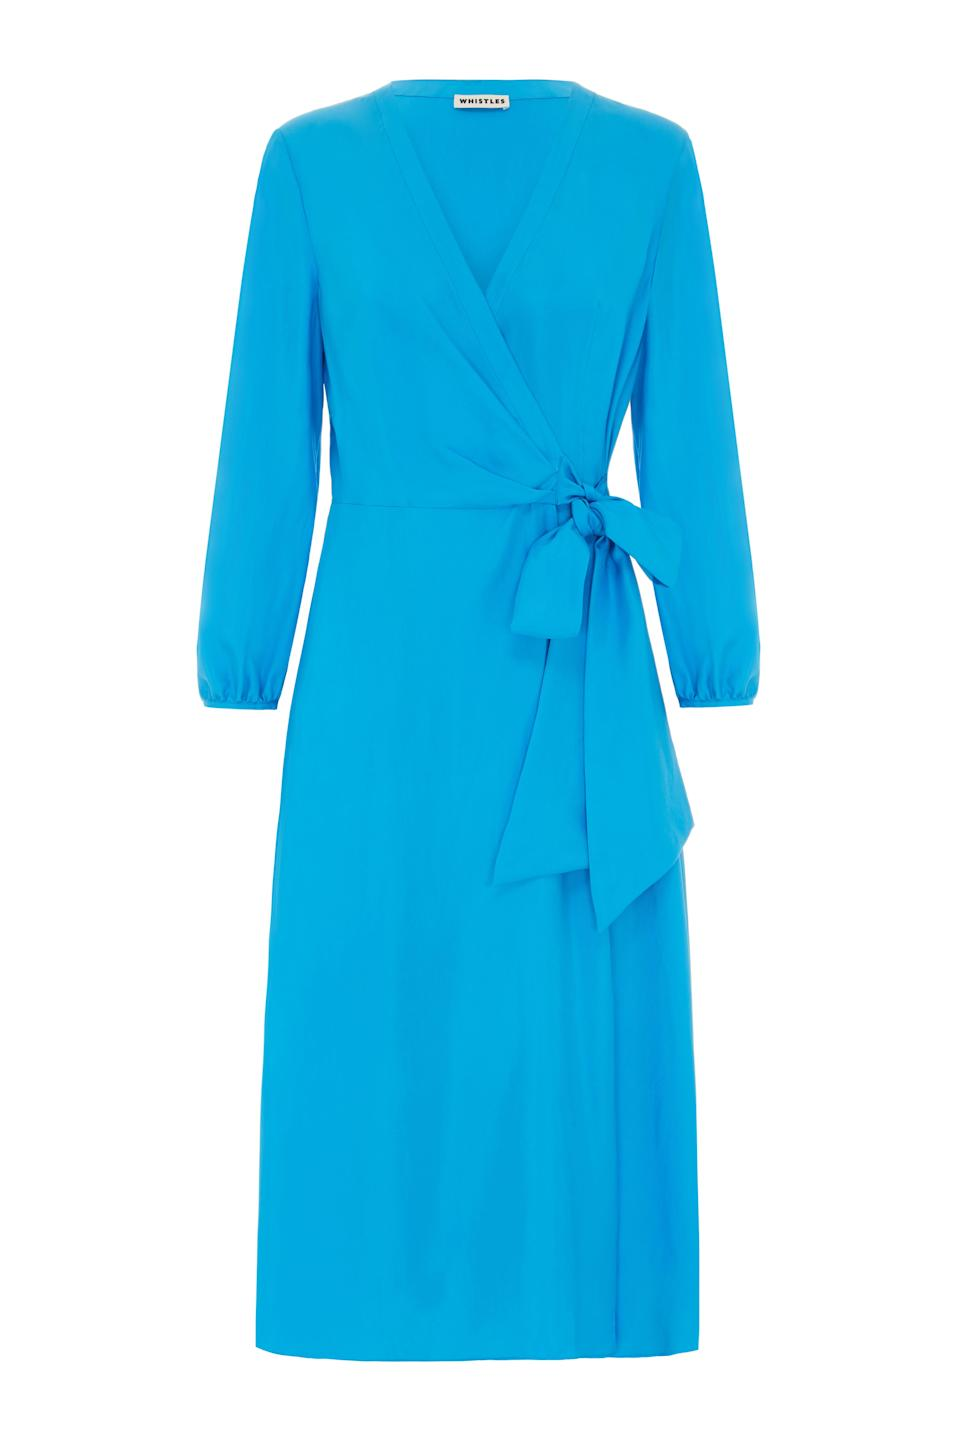 """<p>On the hunt for the perfect wedding guest dress? Look no further than this sky blue number courtesy of Whistles. <a href=""""http://www.whistles.com/women/sale/callie-silk-wrap-dress-27129.html?cgid=Sale_WW&dwvar_callie-silk-wrap-dress-27129_color=Turquoise"""" rel=""""nofollow noopener"""" target=""""_blank"""" data-ylk=""""slk:Shop now"""" class=""""link rapid-noclick-resp""""><em>Shop now</em></a>. </p>"""